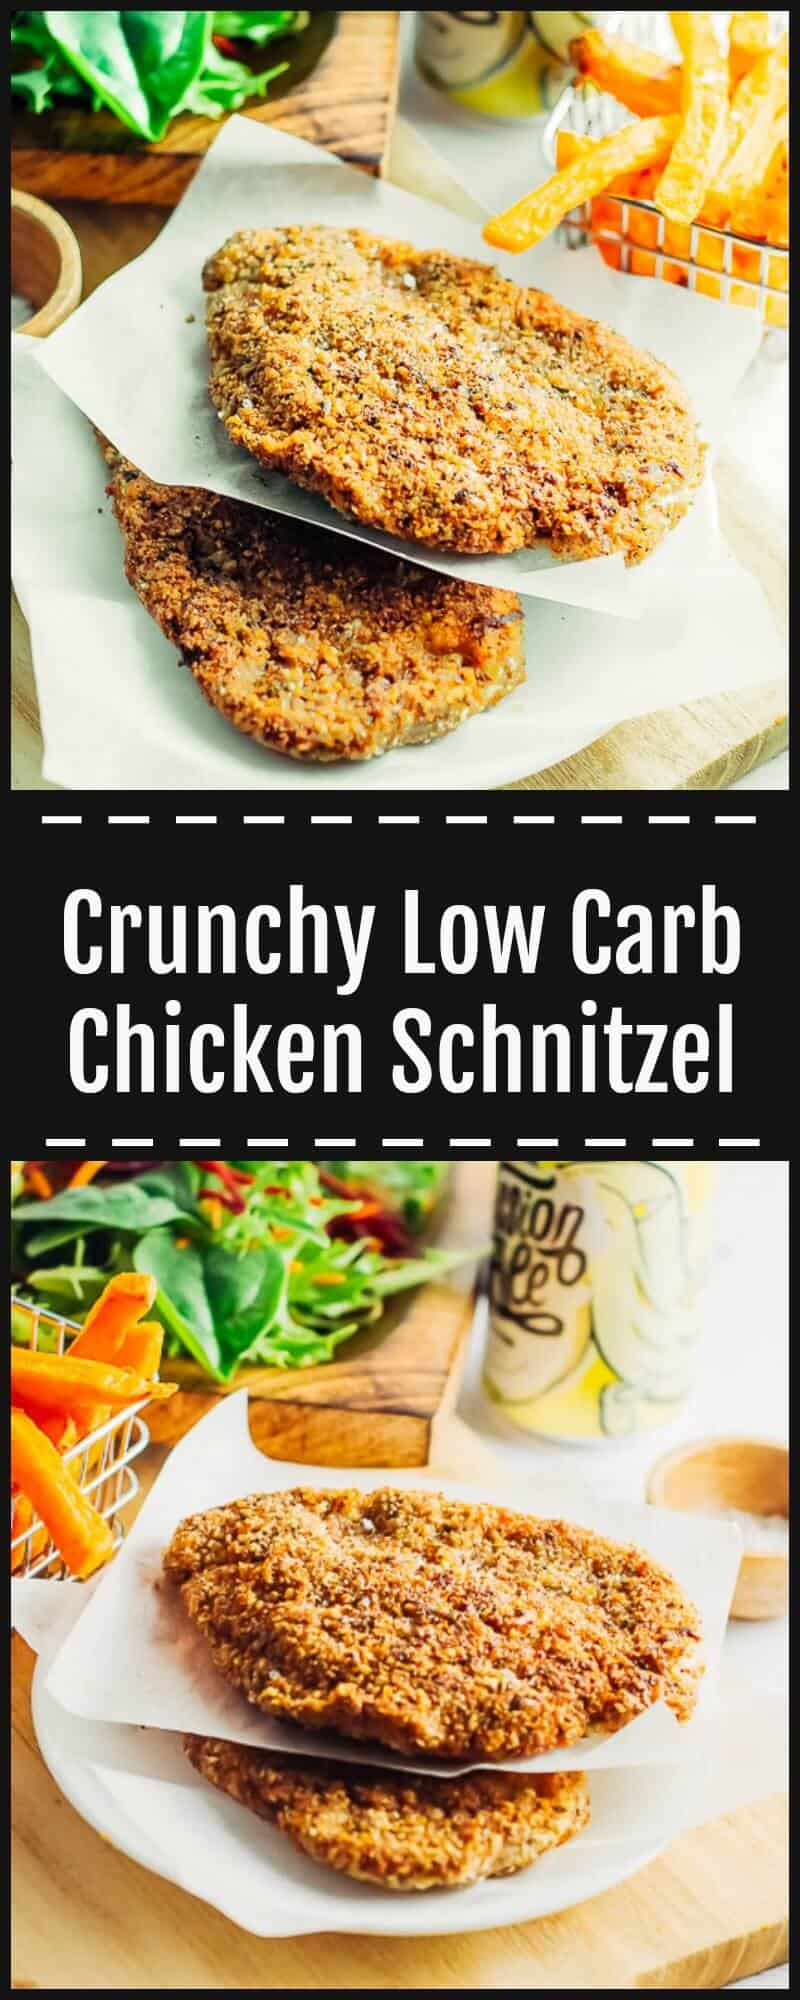 This Low Carb Chicken Schnitzel is an easy 30 min weeknight meal. High protein & crunchy, made with Hazelnut meal & flavoured with herbs, spices & parmesan.